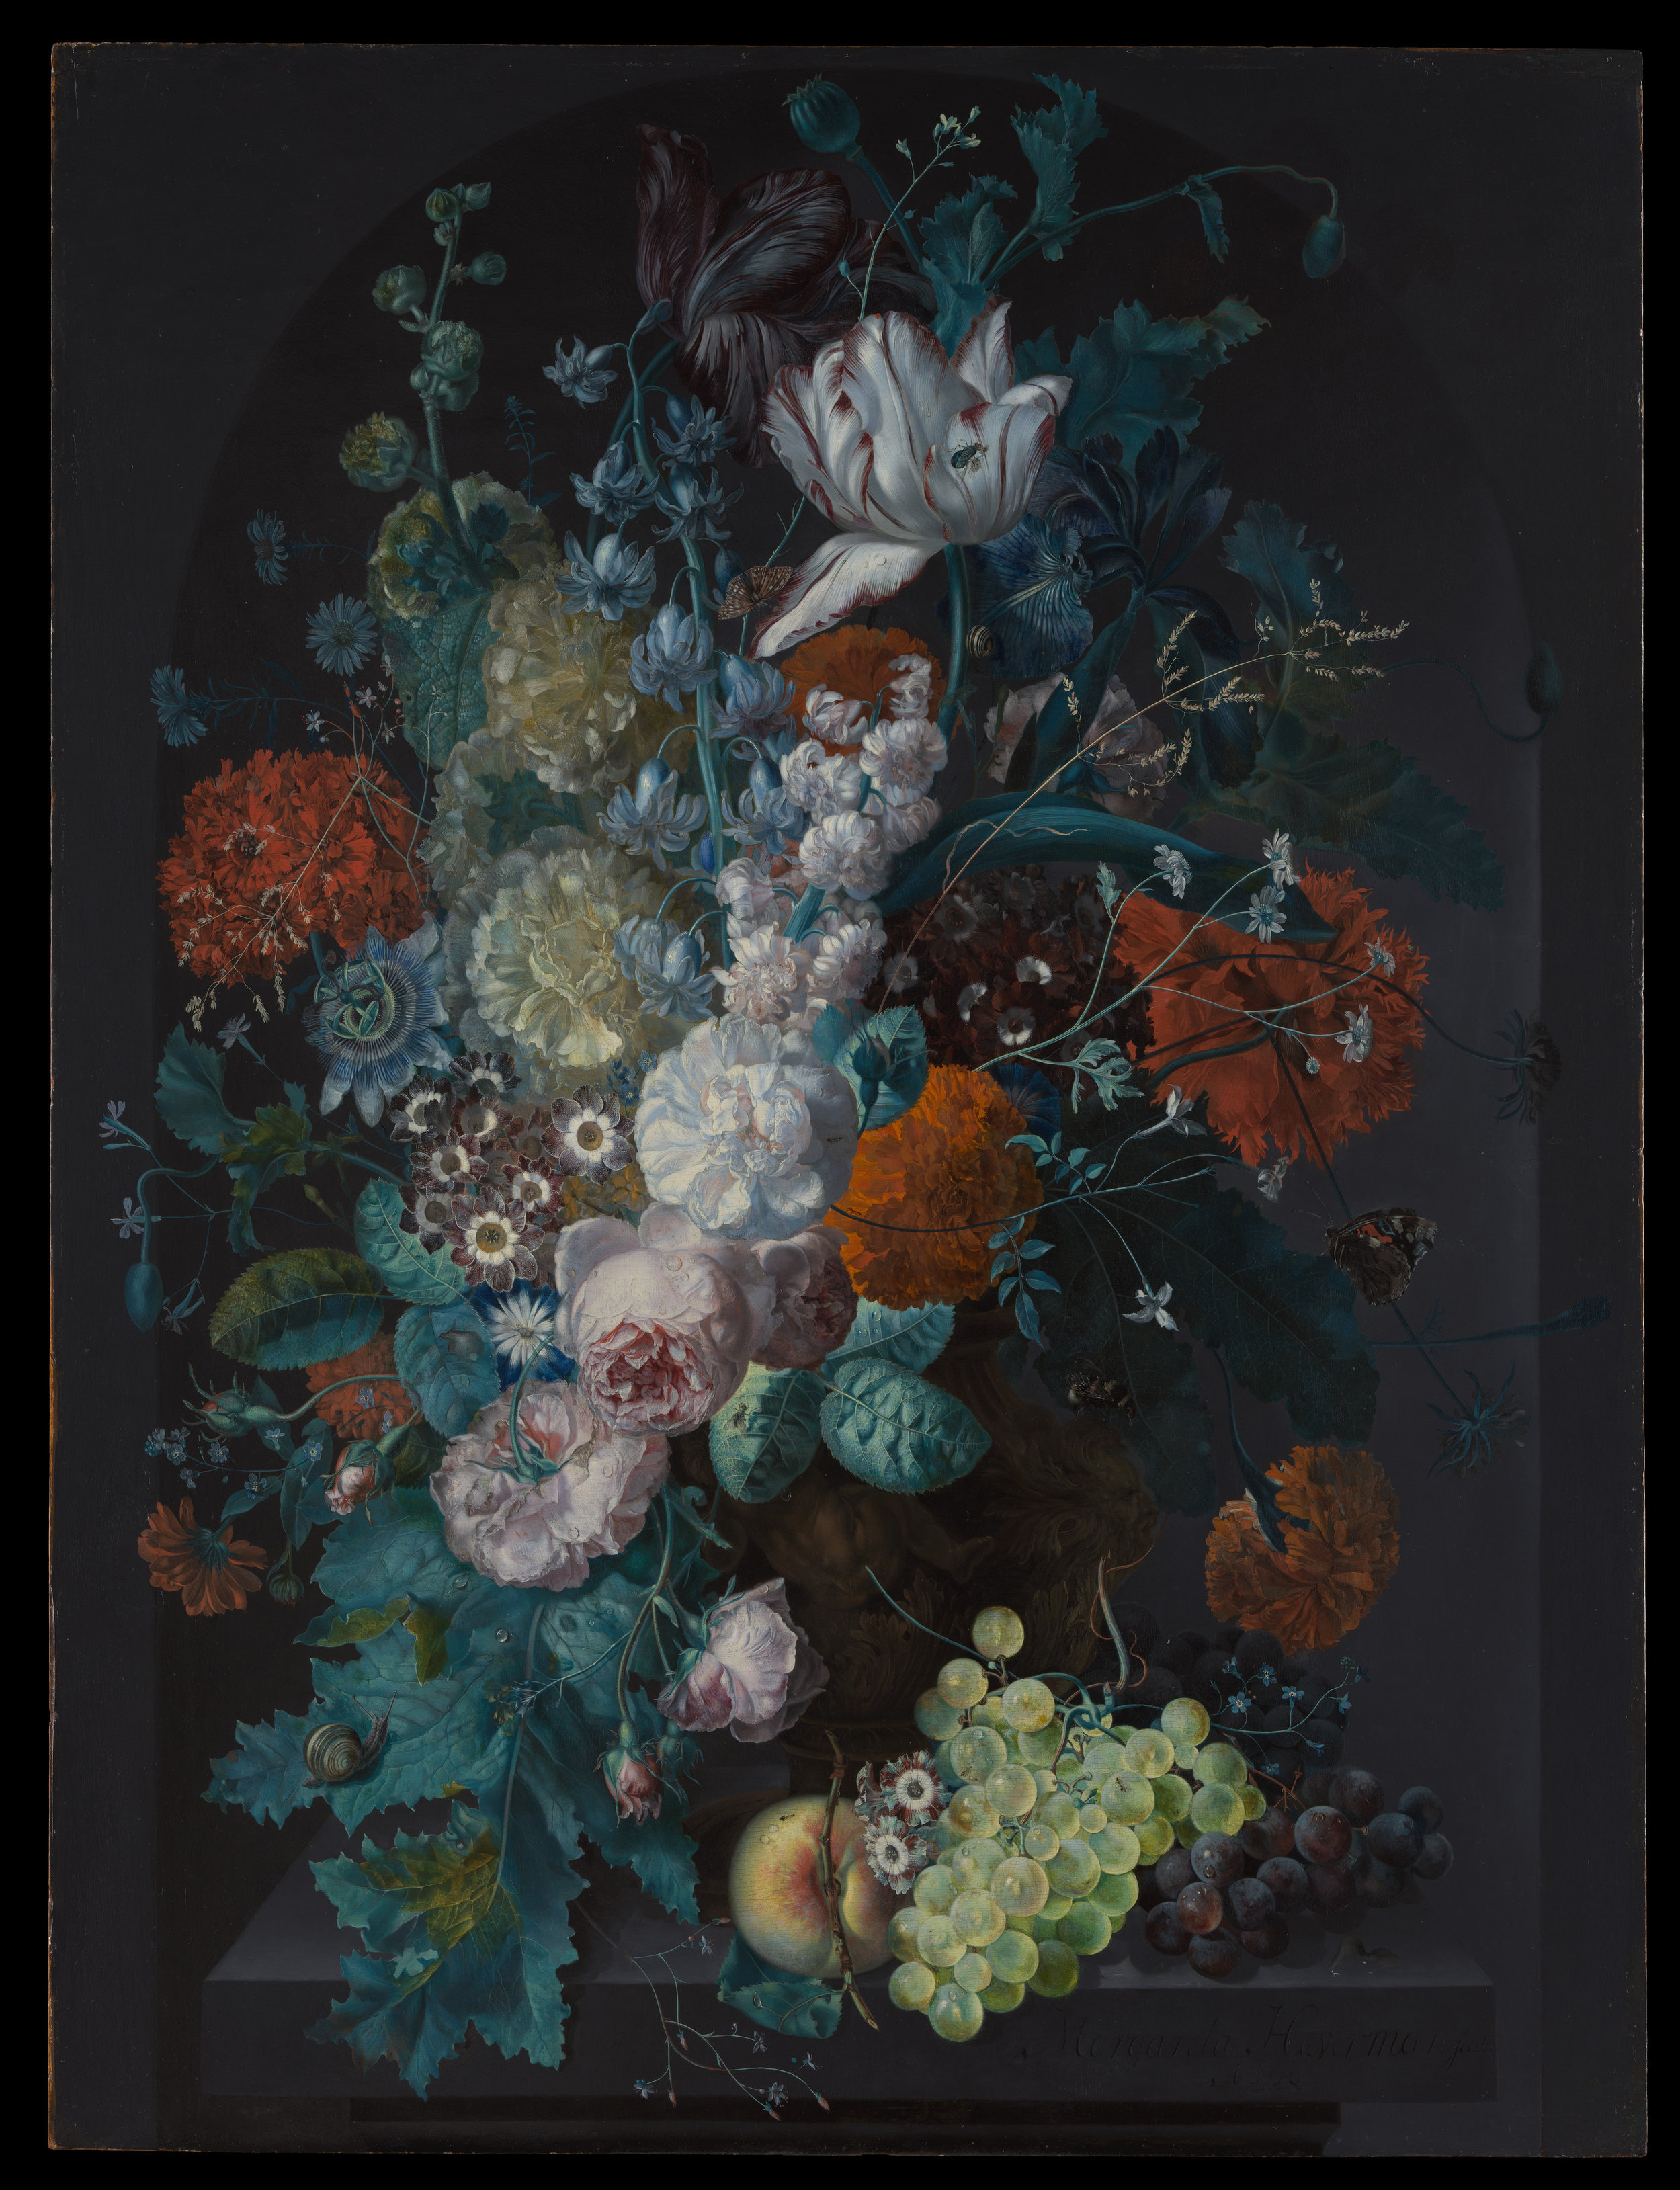 Margareta Haverman (Dutch, Breda 1693–1722 or later).  A Vase of Flowers . 1716. Oil on wood. 31 1/4 x 23 3/4 in. (79.4 x 60.3 cm). The Metropolitan Museum of Art. Purchase. 71.6.  https://www.metmuseum.org/art/collection/search/436634